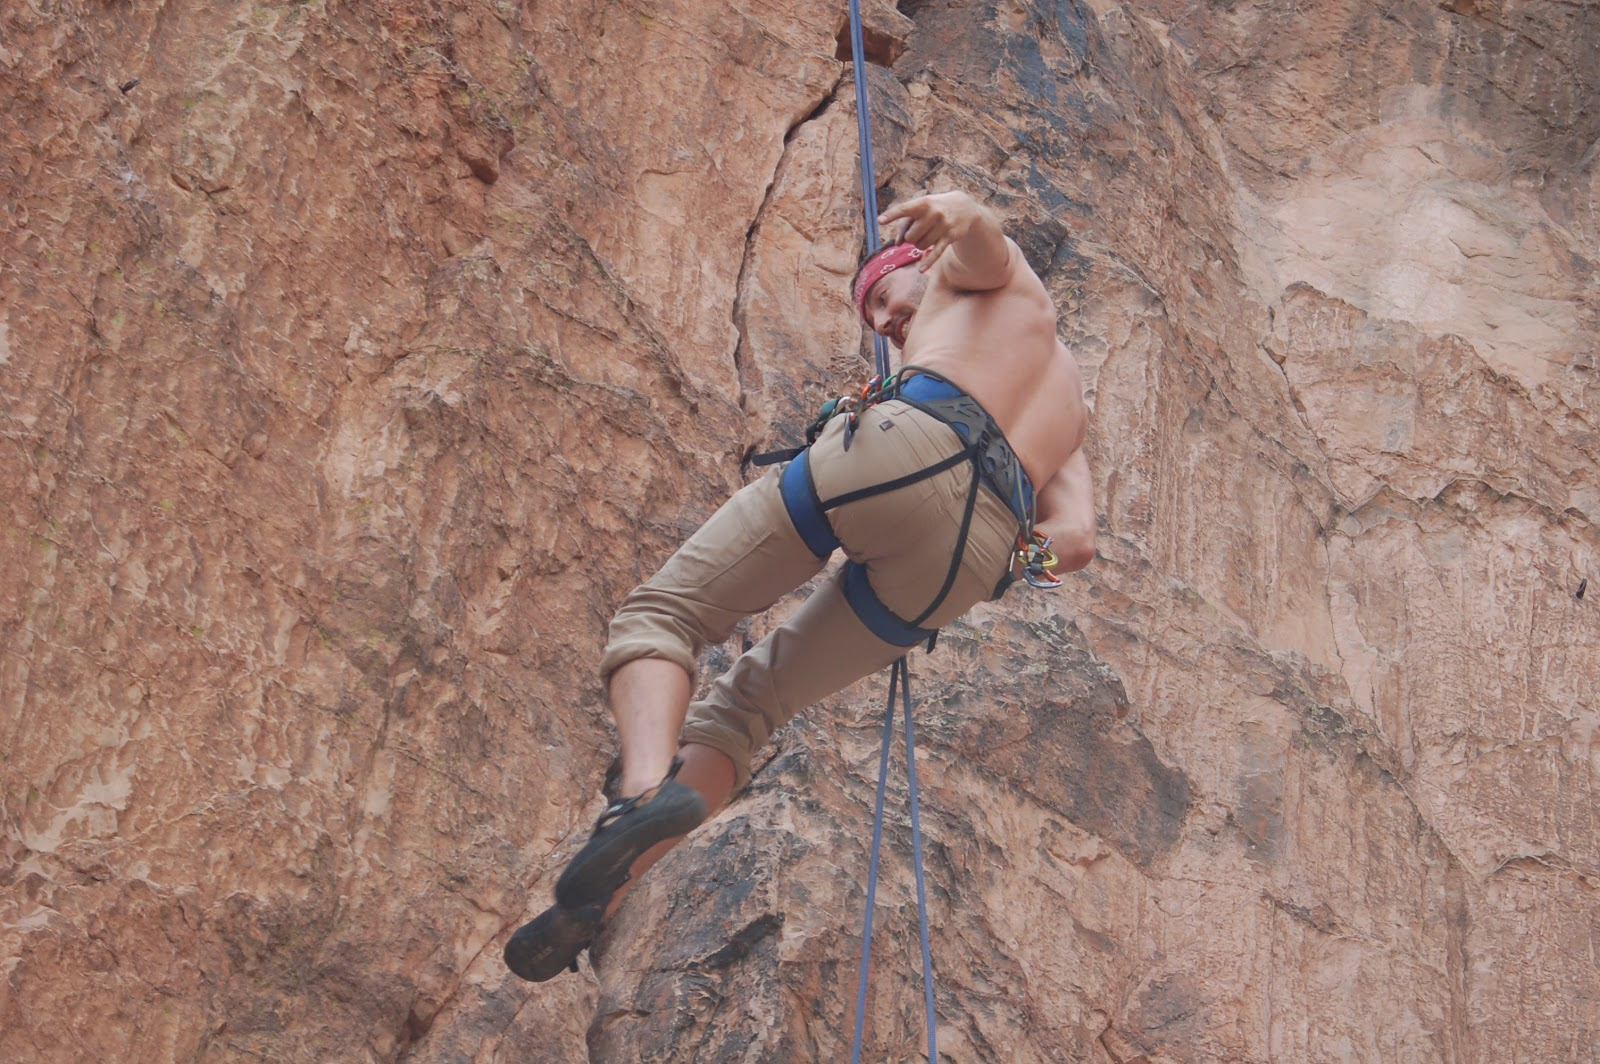 Rope trip climbing at the garden of the gods colorado - Garden of the gods rock climbing ...